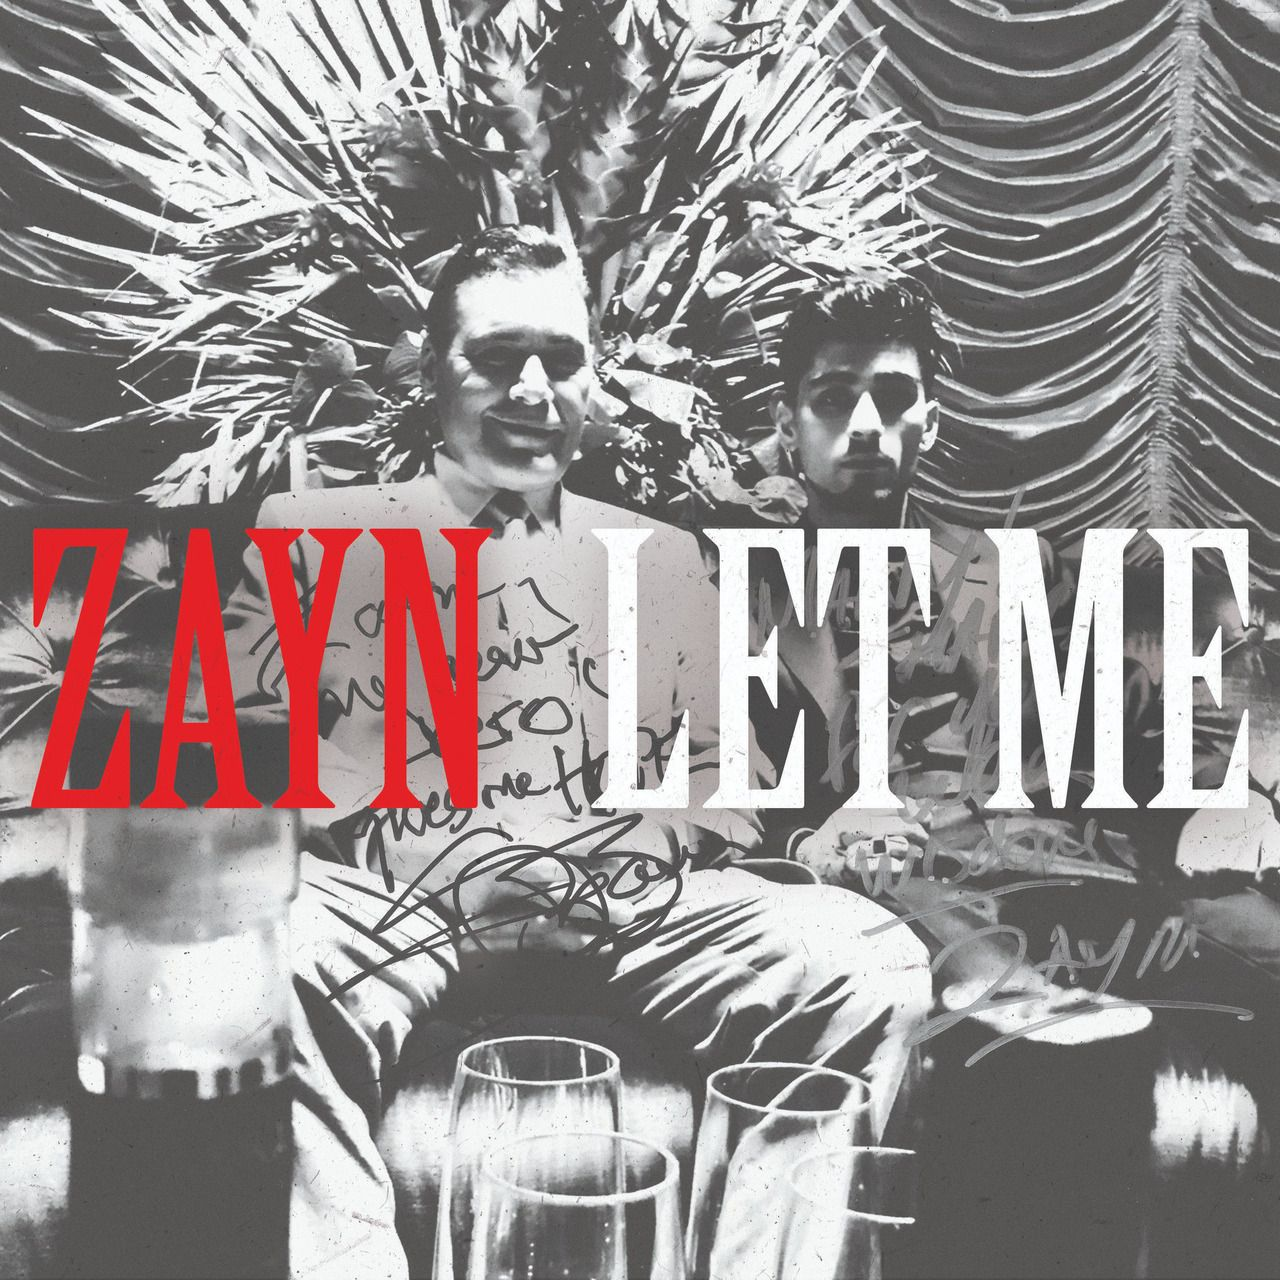 Zayn S Brand New Song Let Me Is Available On Itunes Apple Music Spotify Youtube Amazon Google Play Deezer Zayn Songs Album Songs